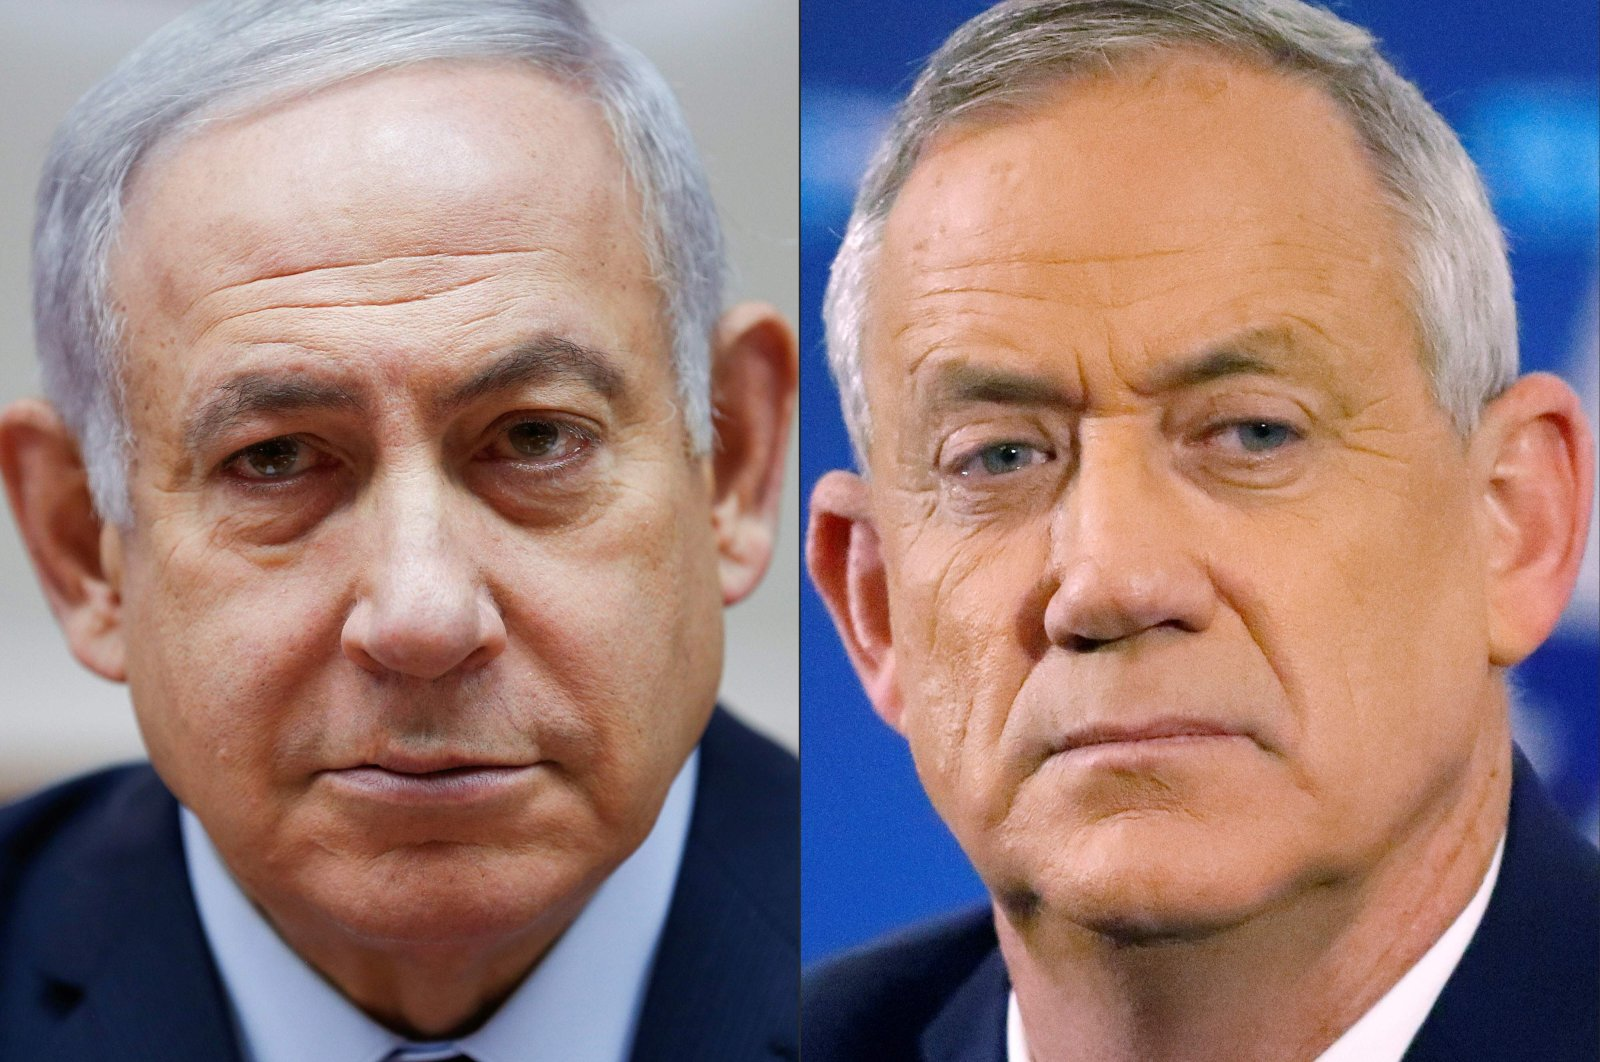 This combination of photos shows Israeli Prime Minister Benjamin Netanyahu attending the weekly Cabinet meeting at his office in Jerusalem on Dec. 9, 2018, and retired Israeli Gen. Benny Gantz attending a news conference in Tel Aviv, Israel, April 1, 2019. (AFP Photo)